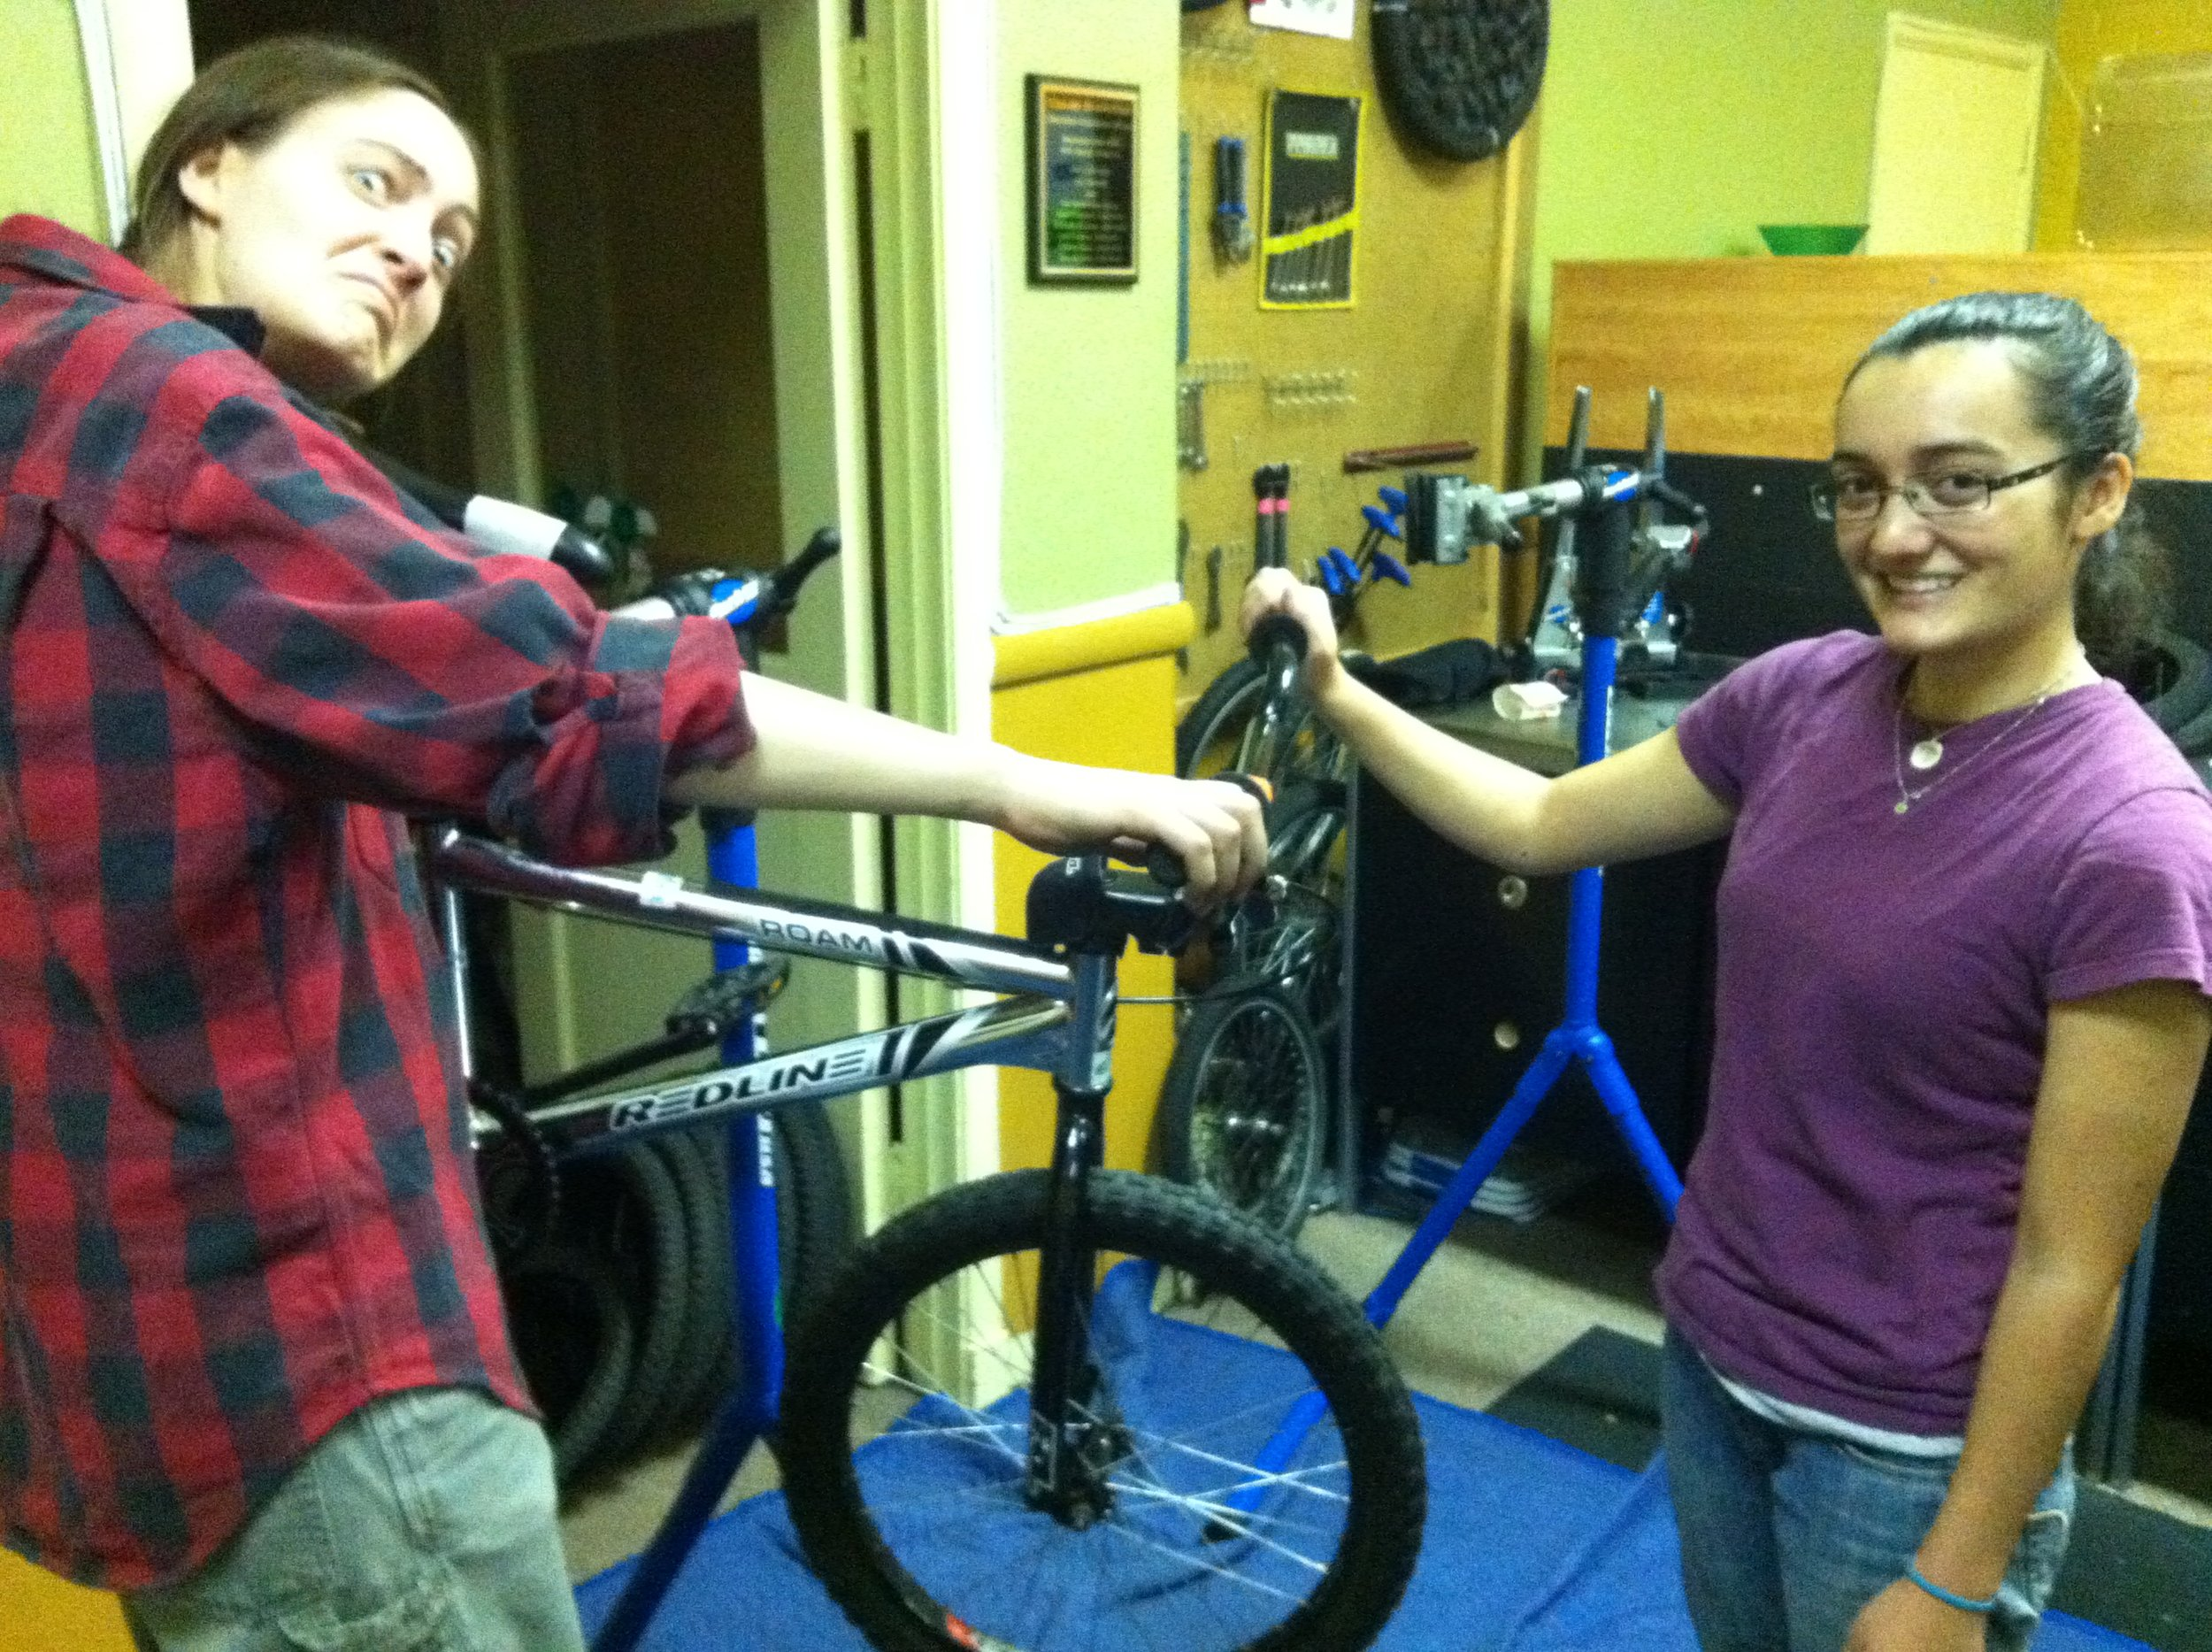 bicycle-maintenance-party_6530020363_o.jpg